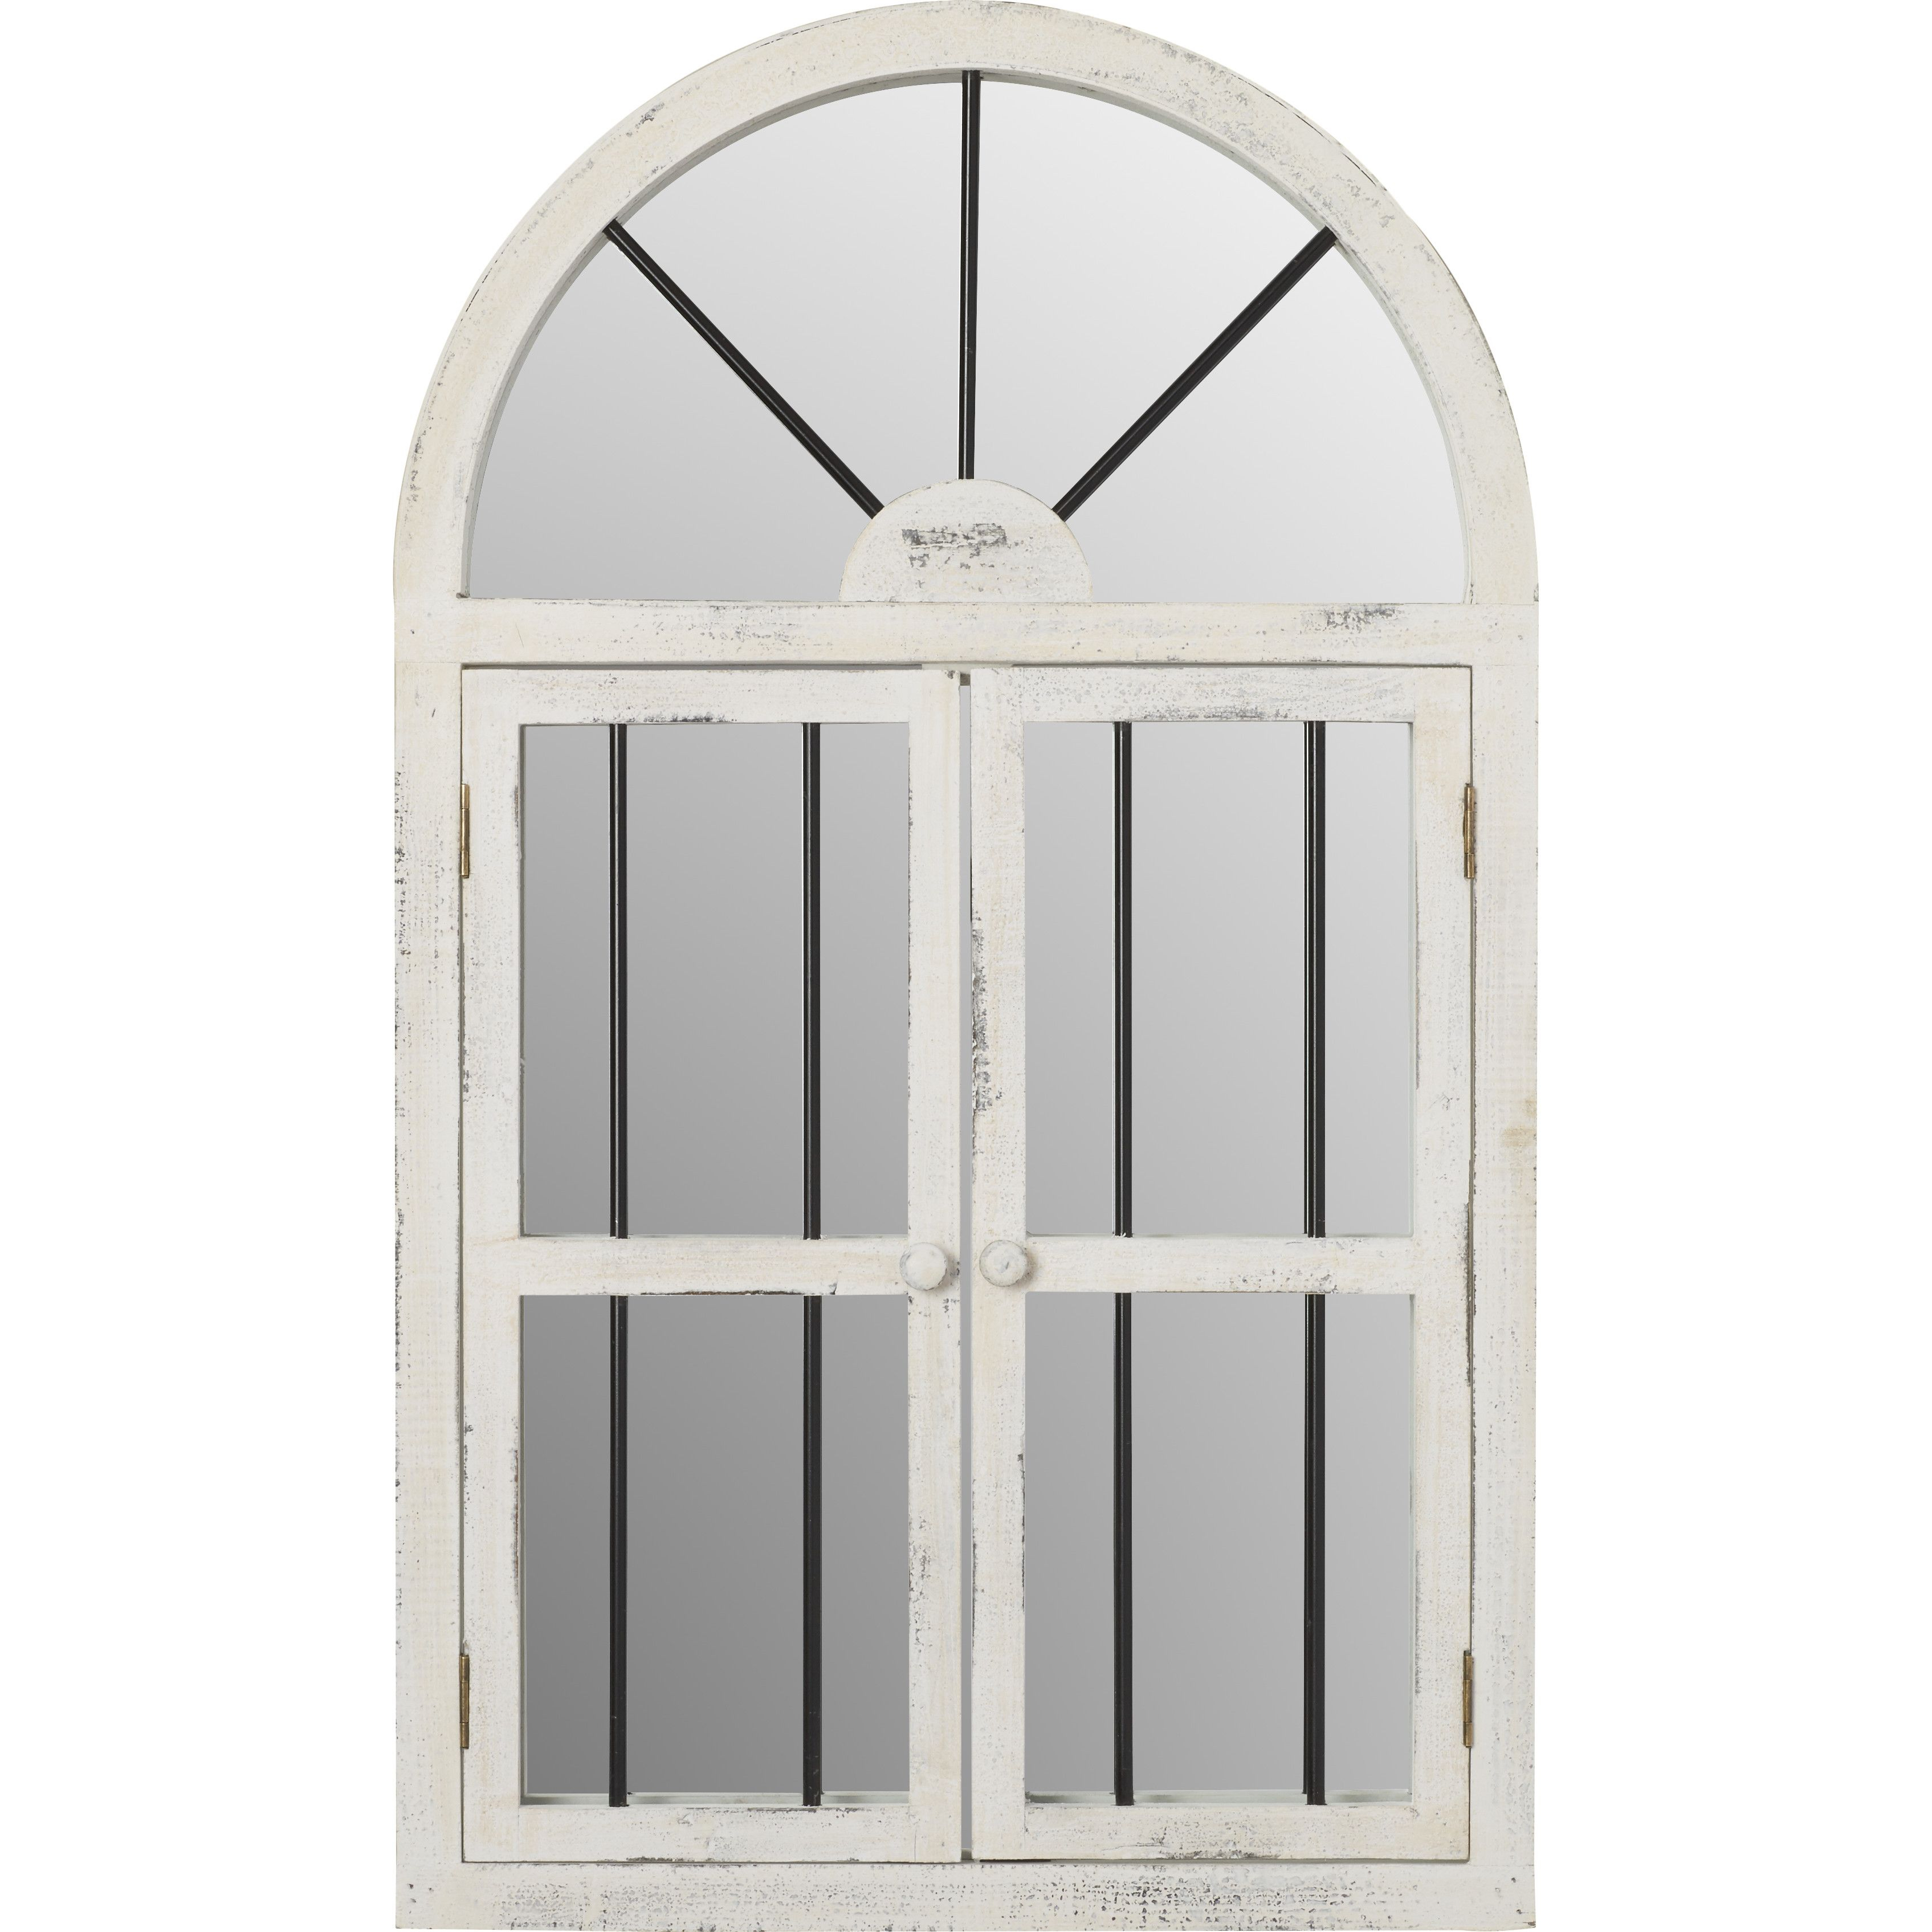 Faux Window Wood Wall Mirror | Окна | Faux Window, Round Intended For Faux Window Wood Wall Mirrors (View 5 of 20)